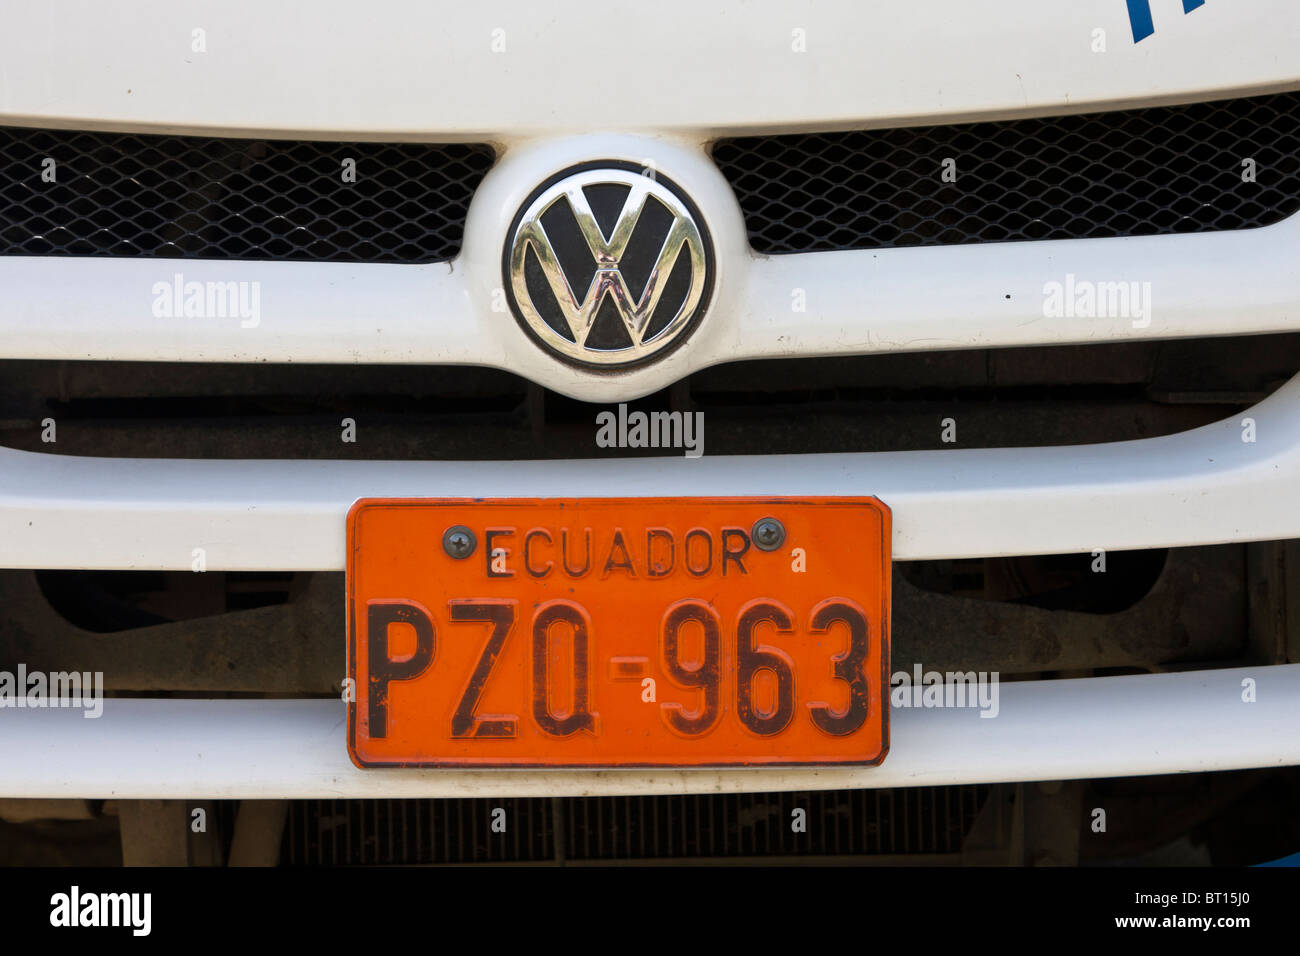 Ecuadorian number plate on VW bus - Stock Image